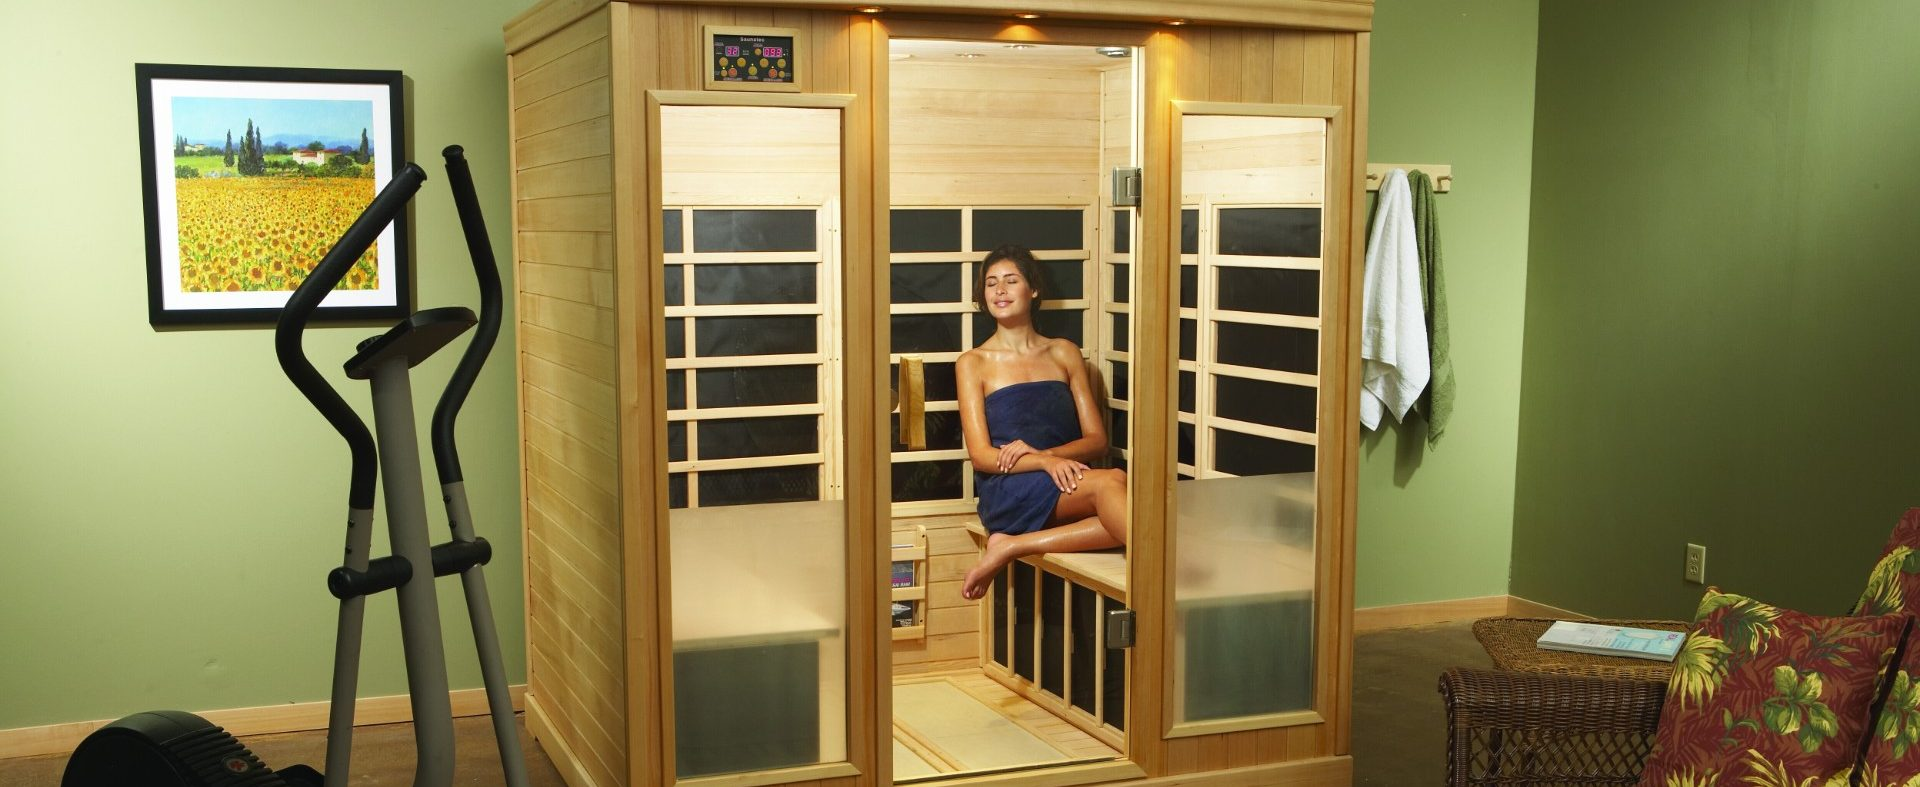 Make 2021 your year of wellness with a sauna. Spend time relaxing while working on health goals, like this woman enjoying her indoor Finnleo sauna.